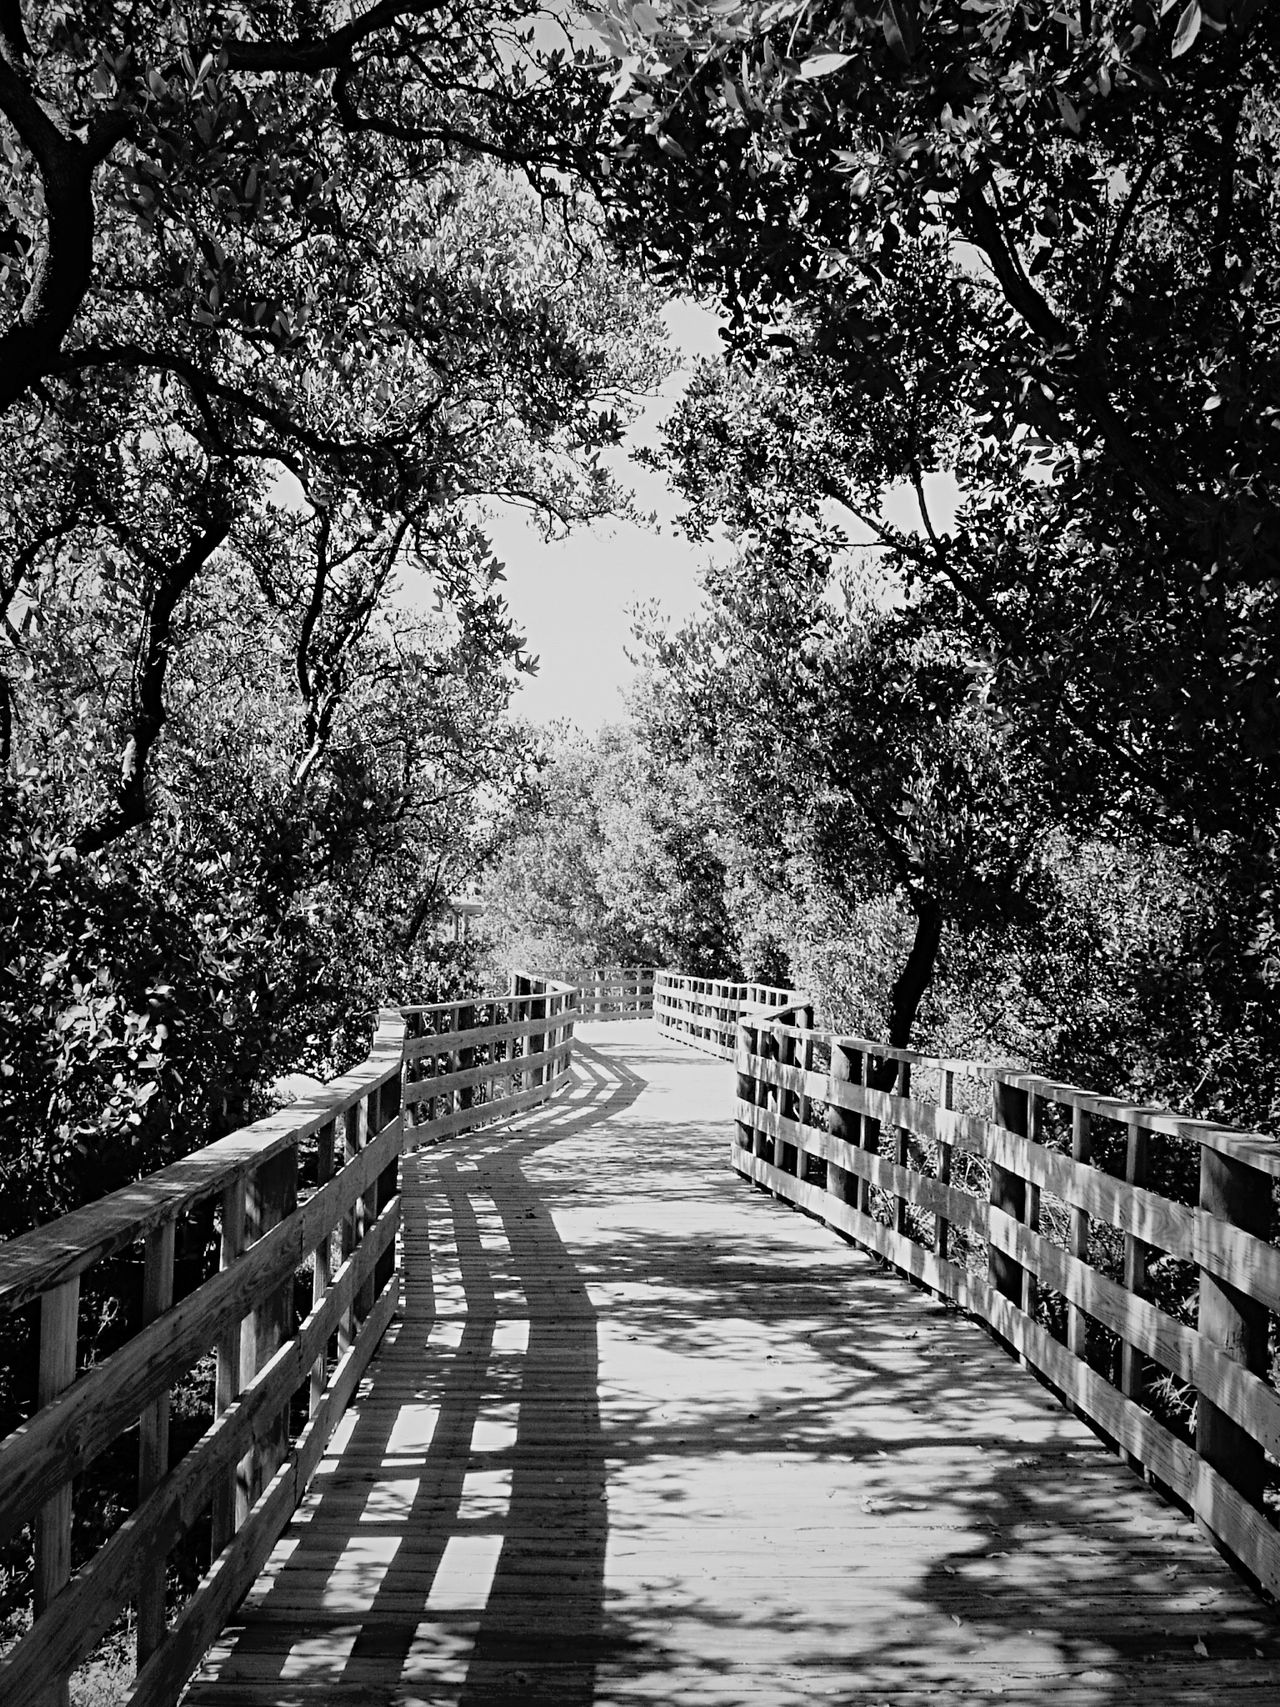 Somewhere in the Florida Keys . Open Edit Blackandwhite Bw_friday_challenge Nature_collection Landscape_Collection Blackandwhite Photography EyeEm Best Shots - Black + White Shades Of Grey B&w Street Photography Landscapes With WhiteWall The Way Forward No People